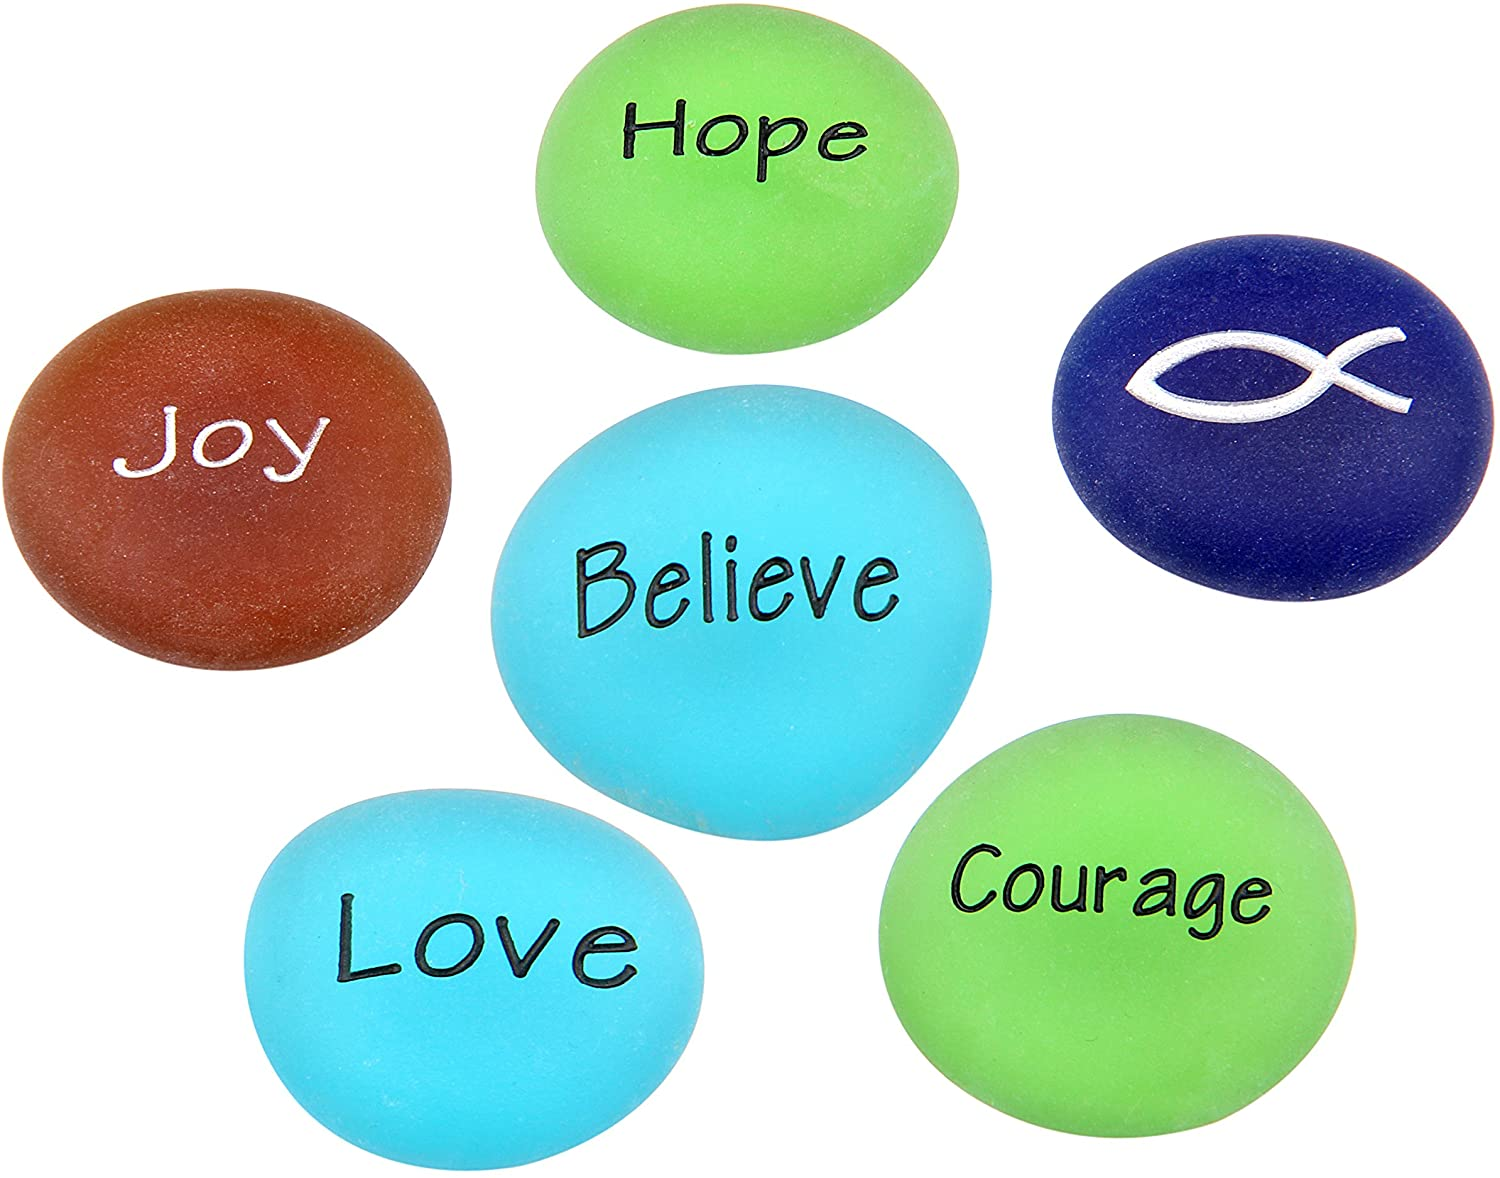 Holy Land Market Courage to Believe - Engraved Frosted Glass Stones Set - Model II